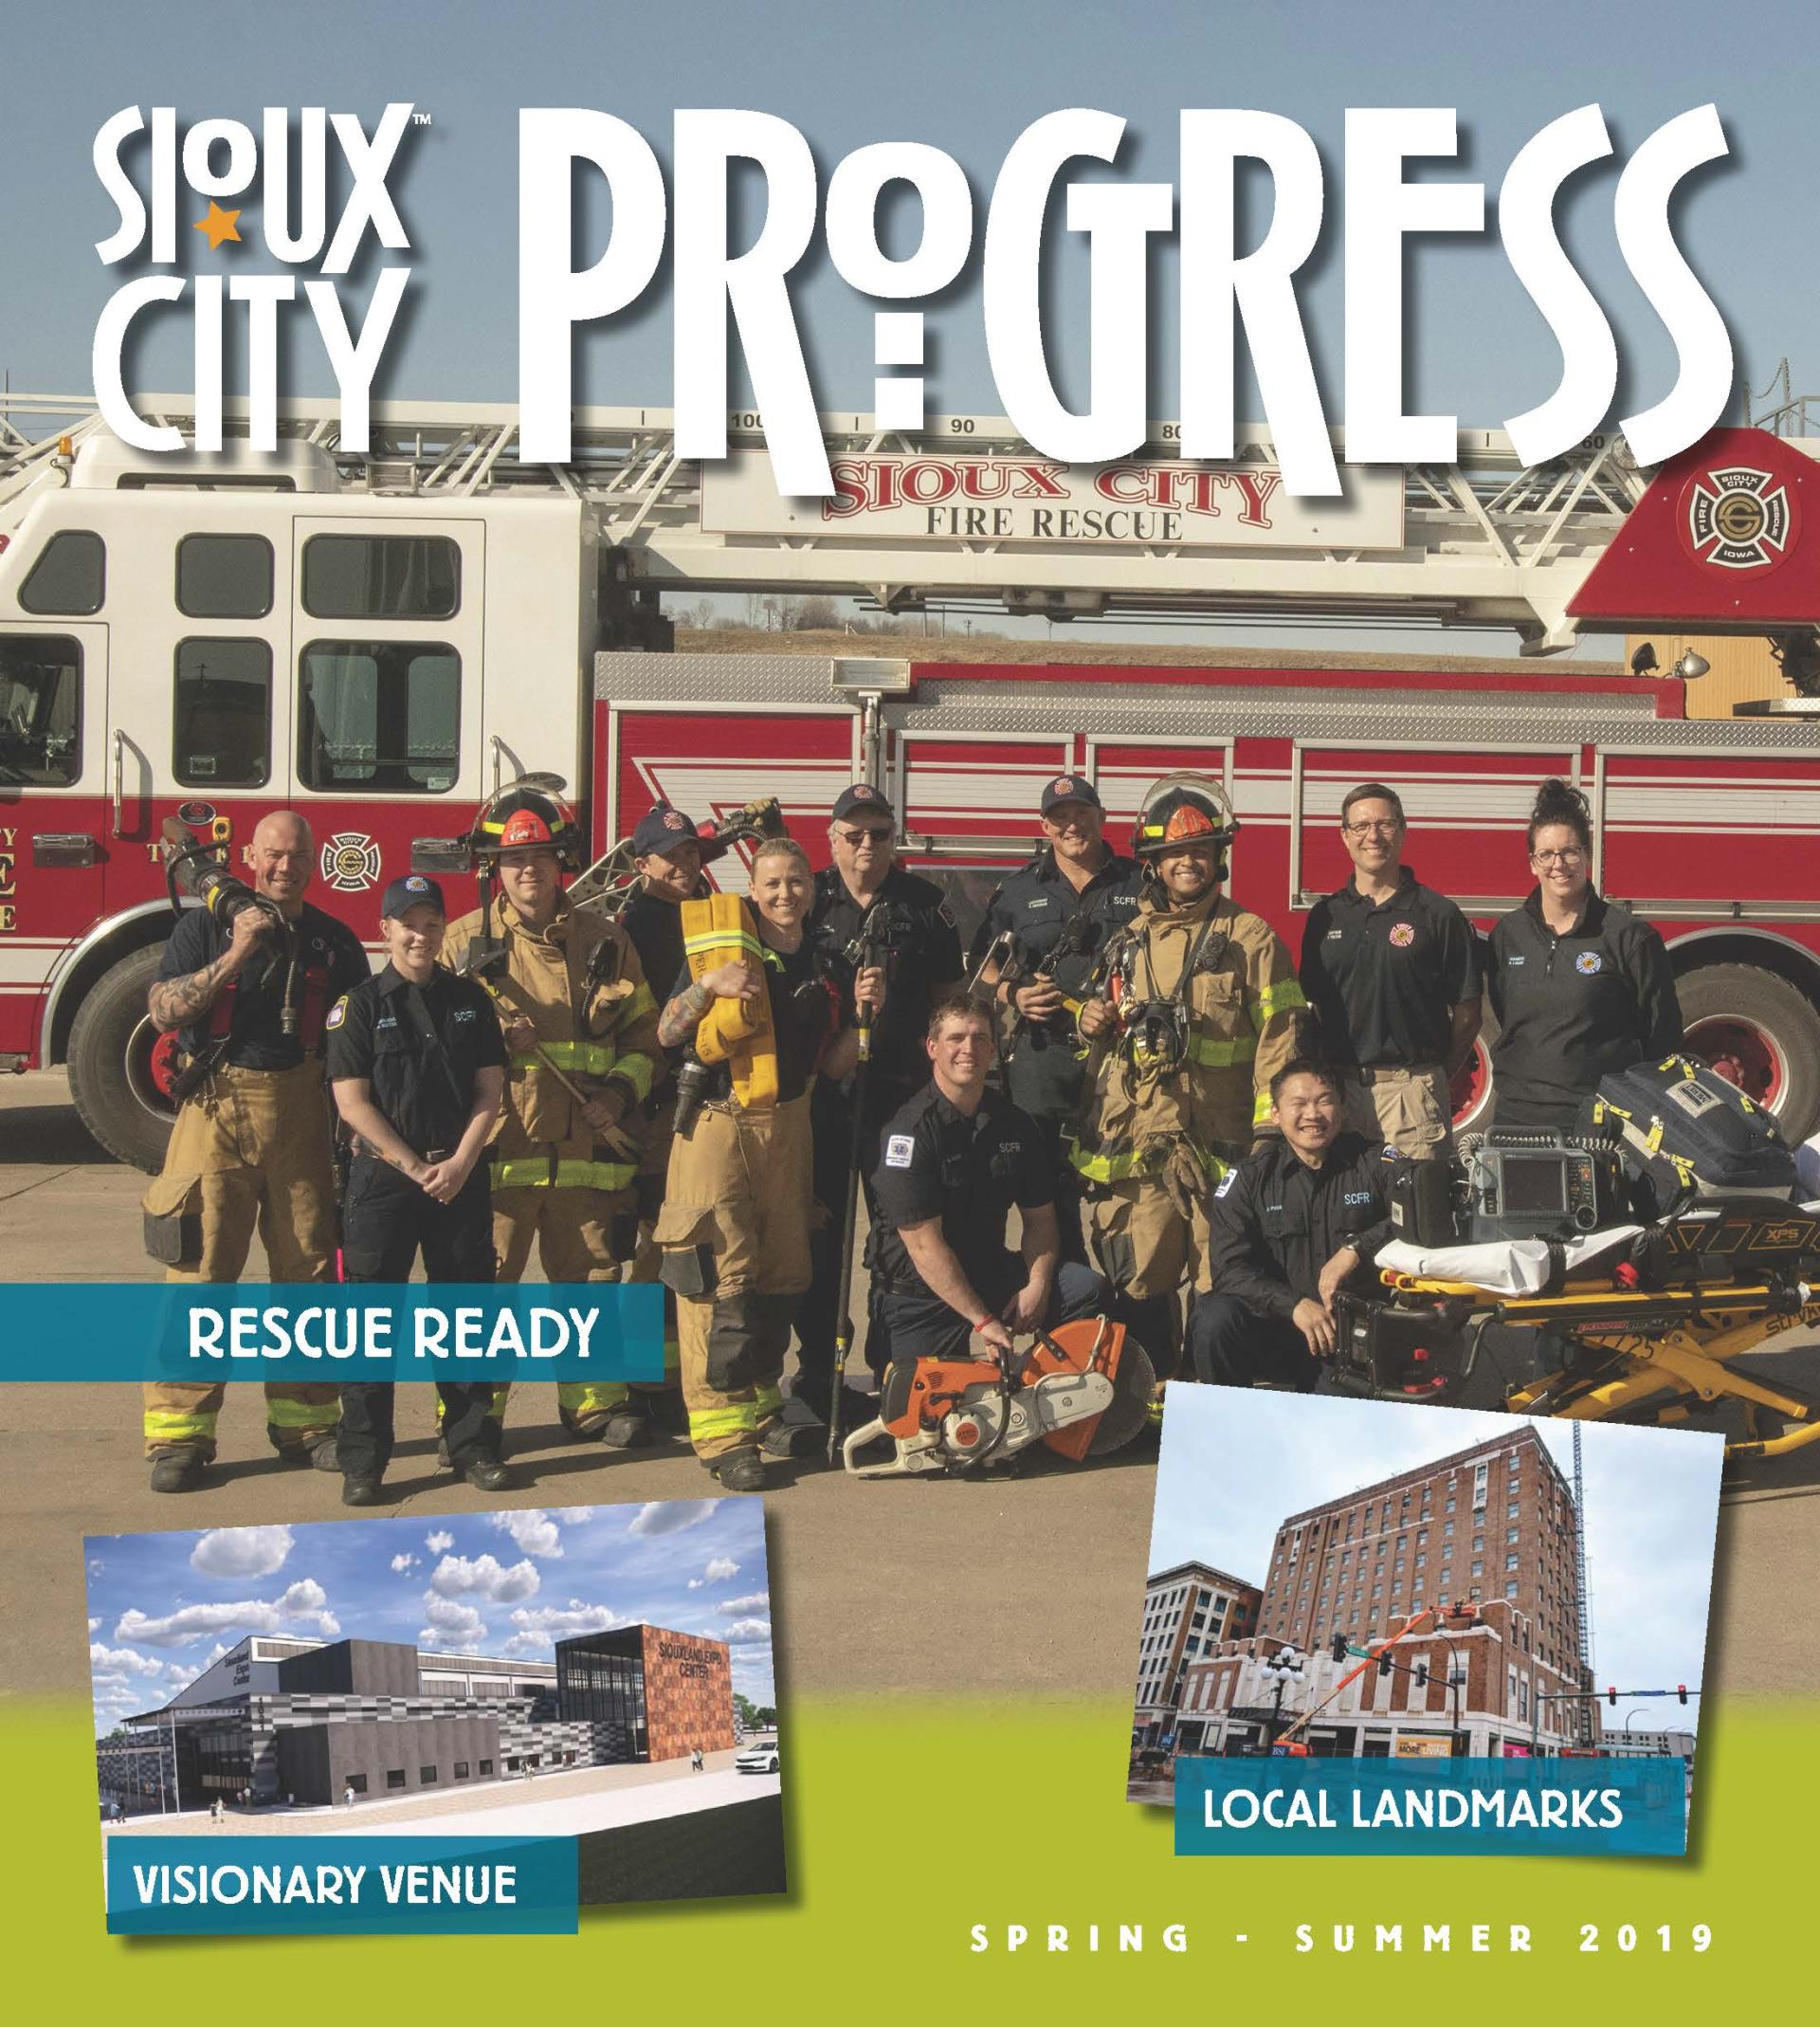 2019 Spring Summer City Progress Newsletter